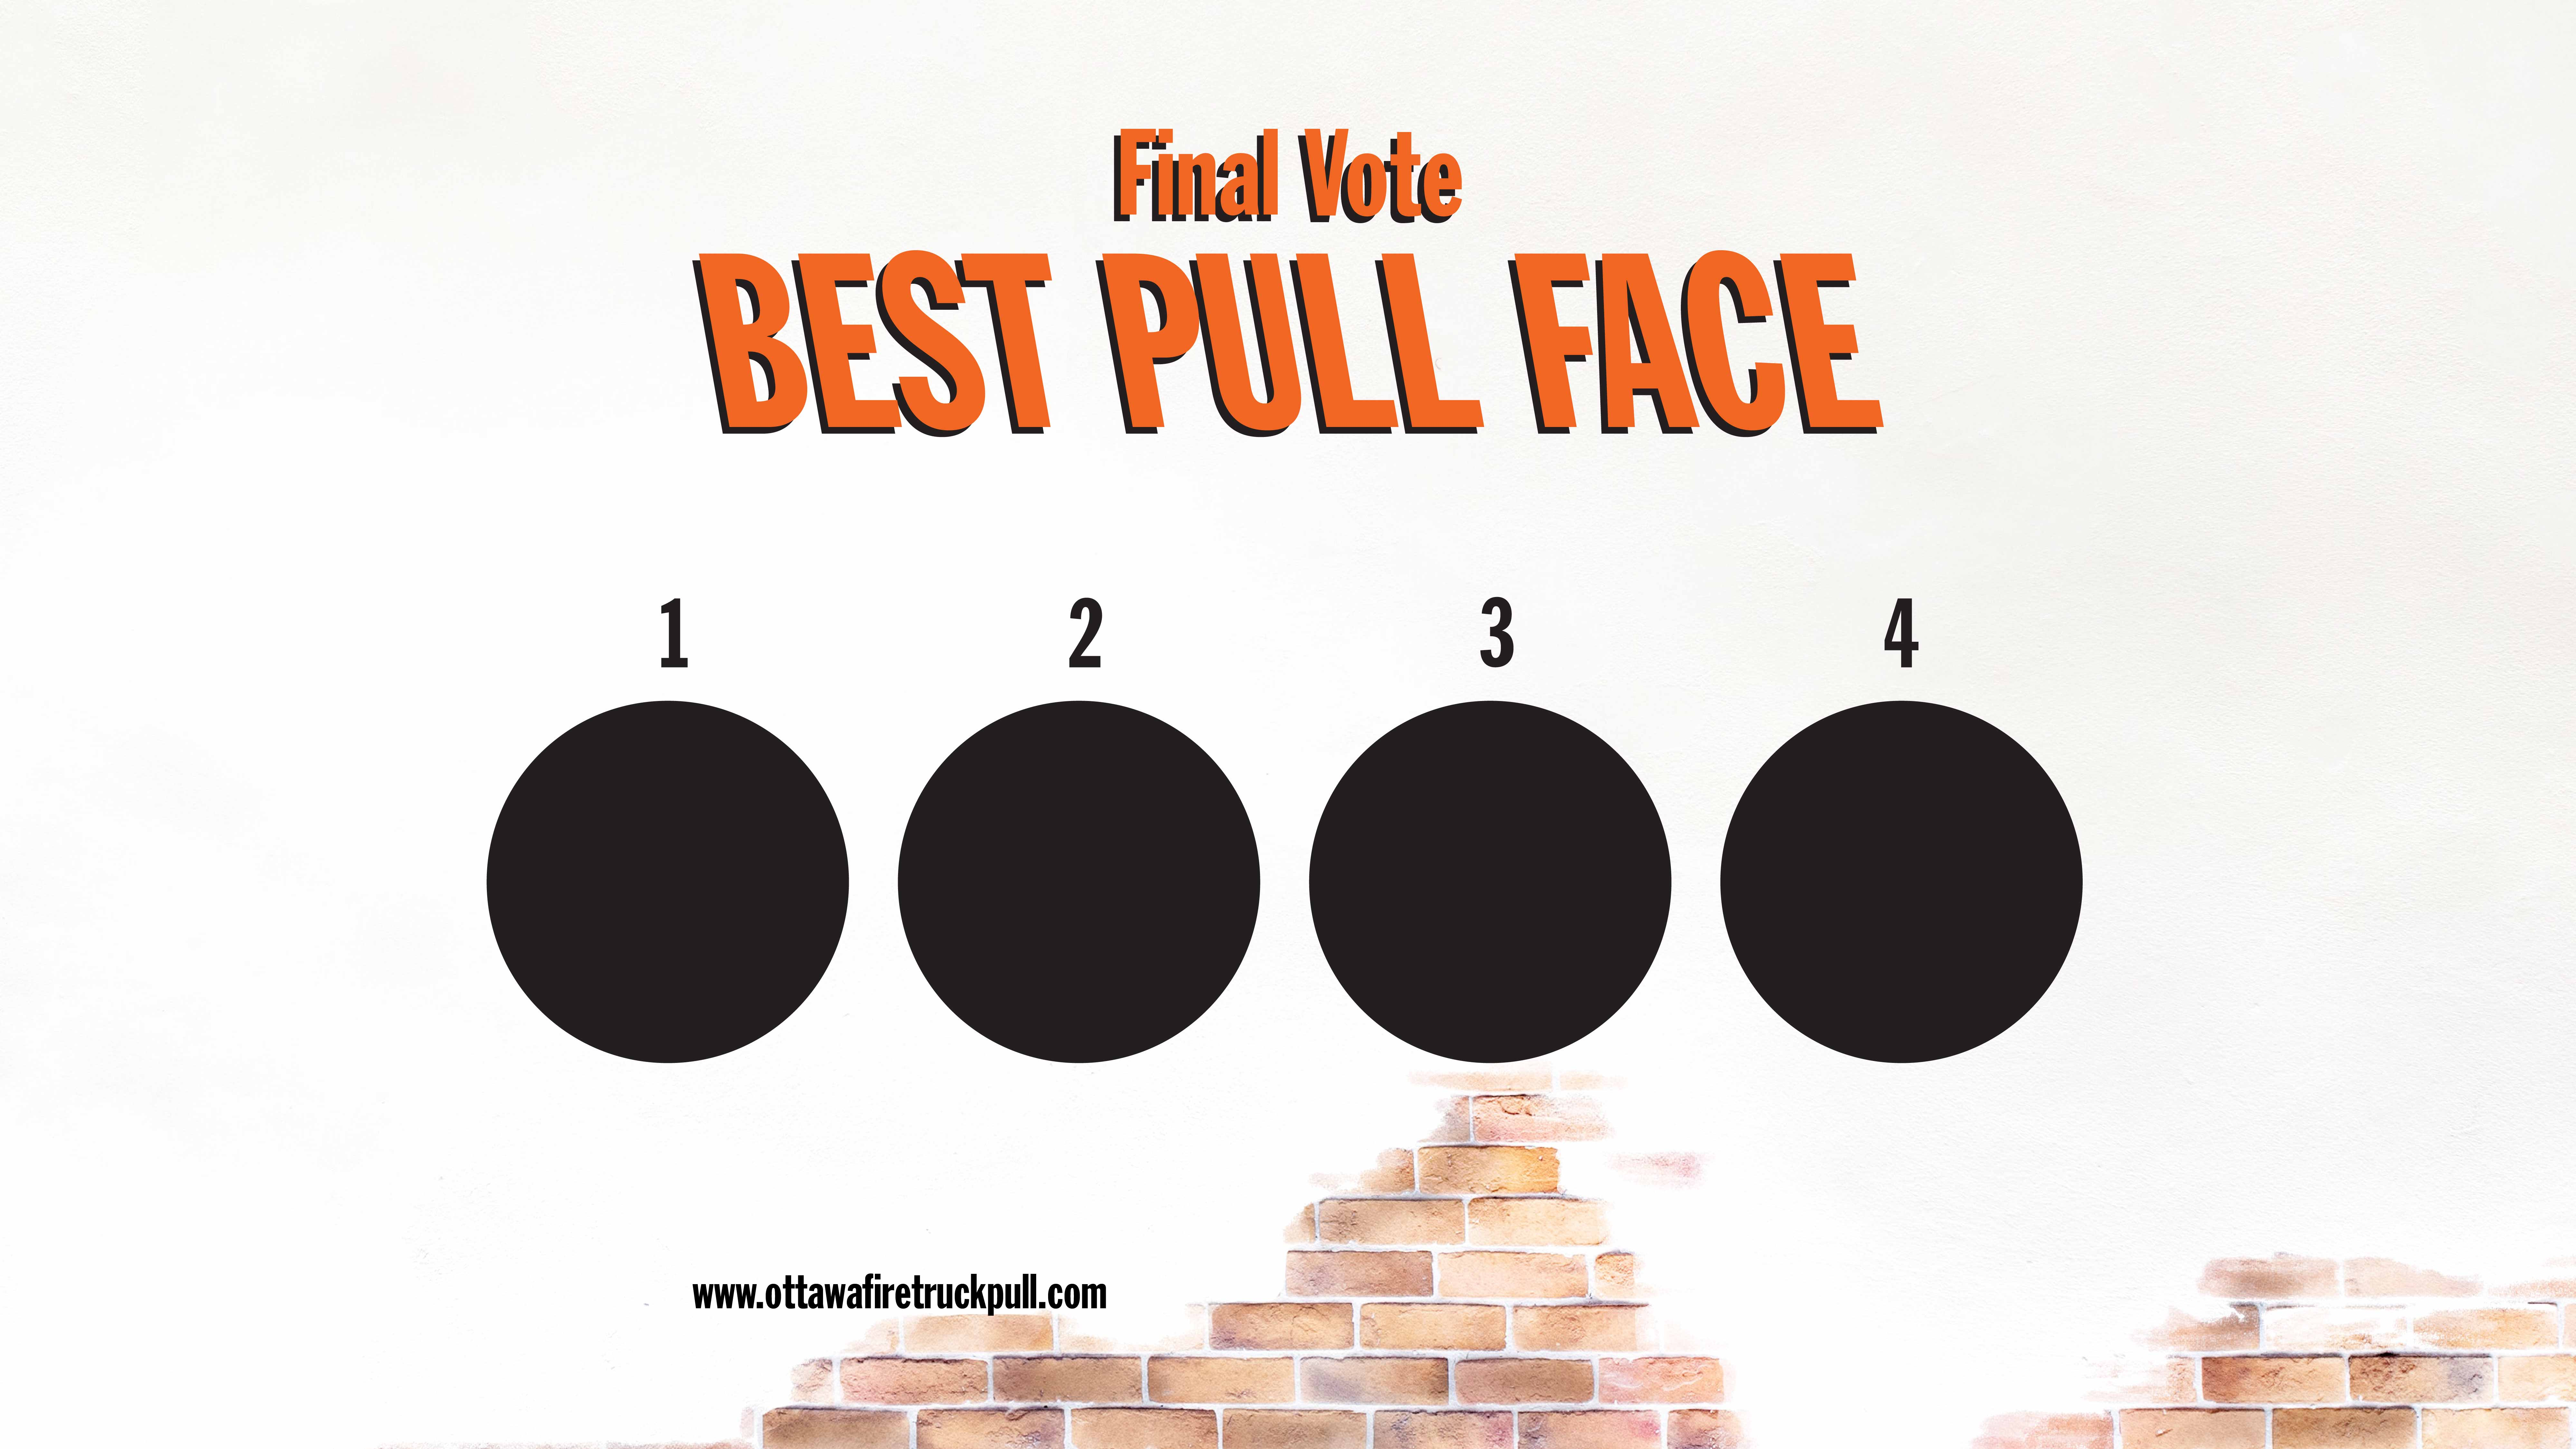 The Final Vote for the Best Pull Face